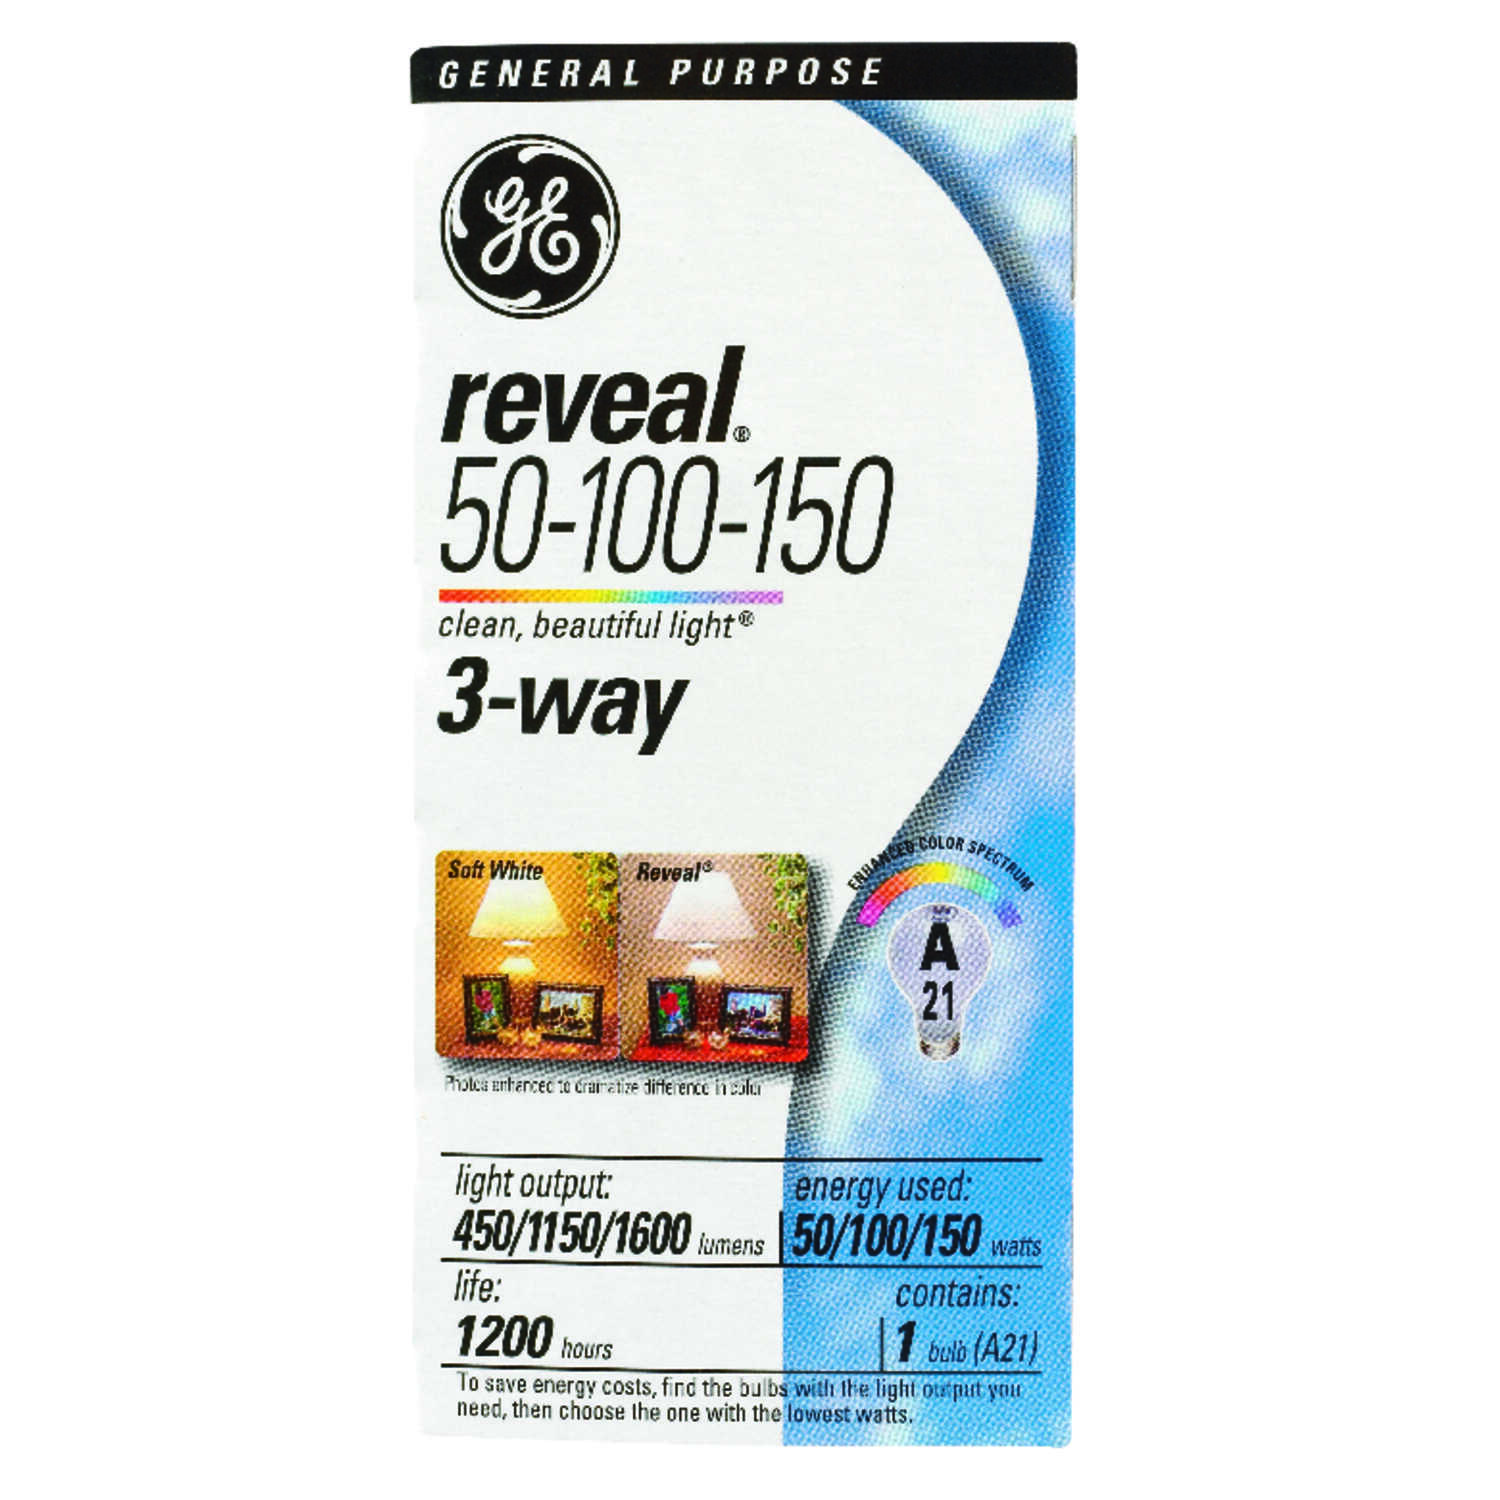 GE  Reveal  50/100/150 watts A21  Incandescent Bulb  450/1,150/1,600 lumens Soft White  A-Line  1 pk